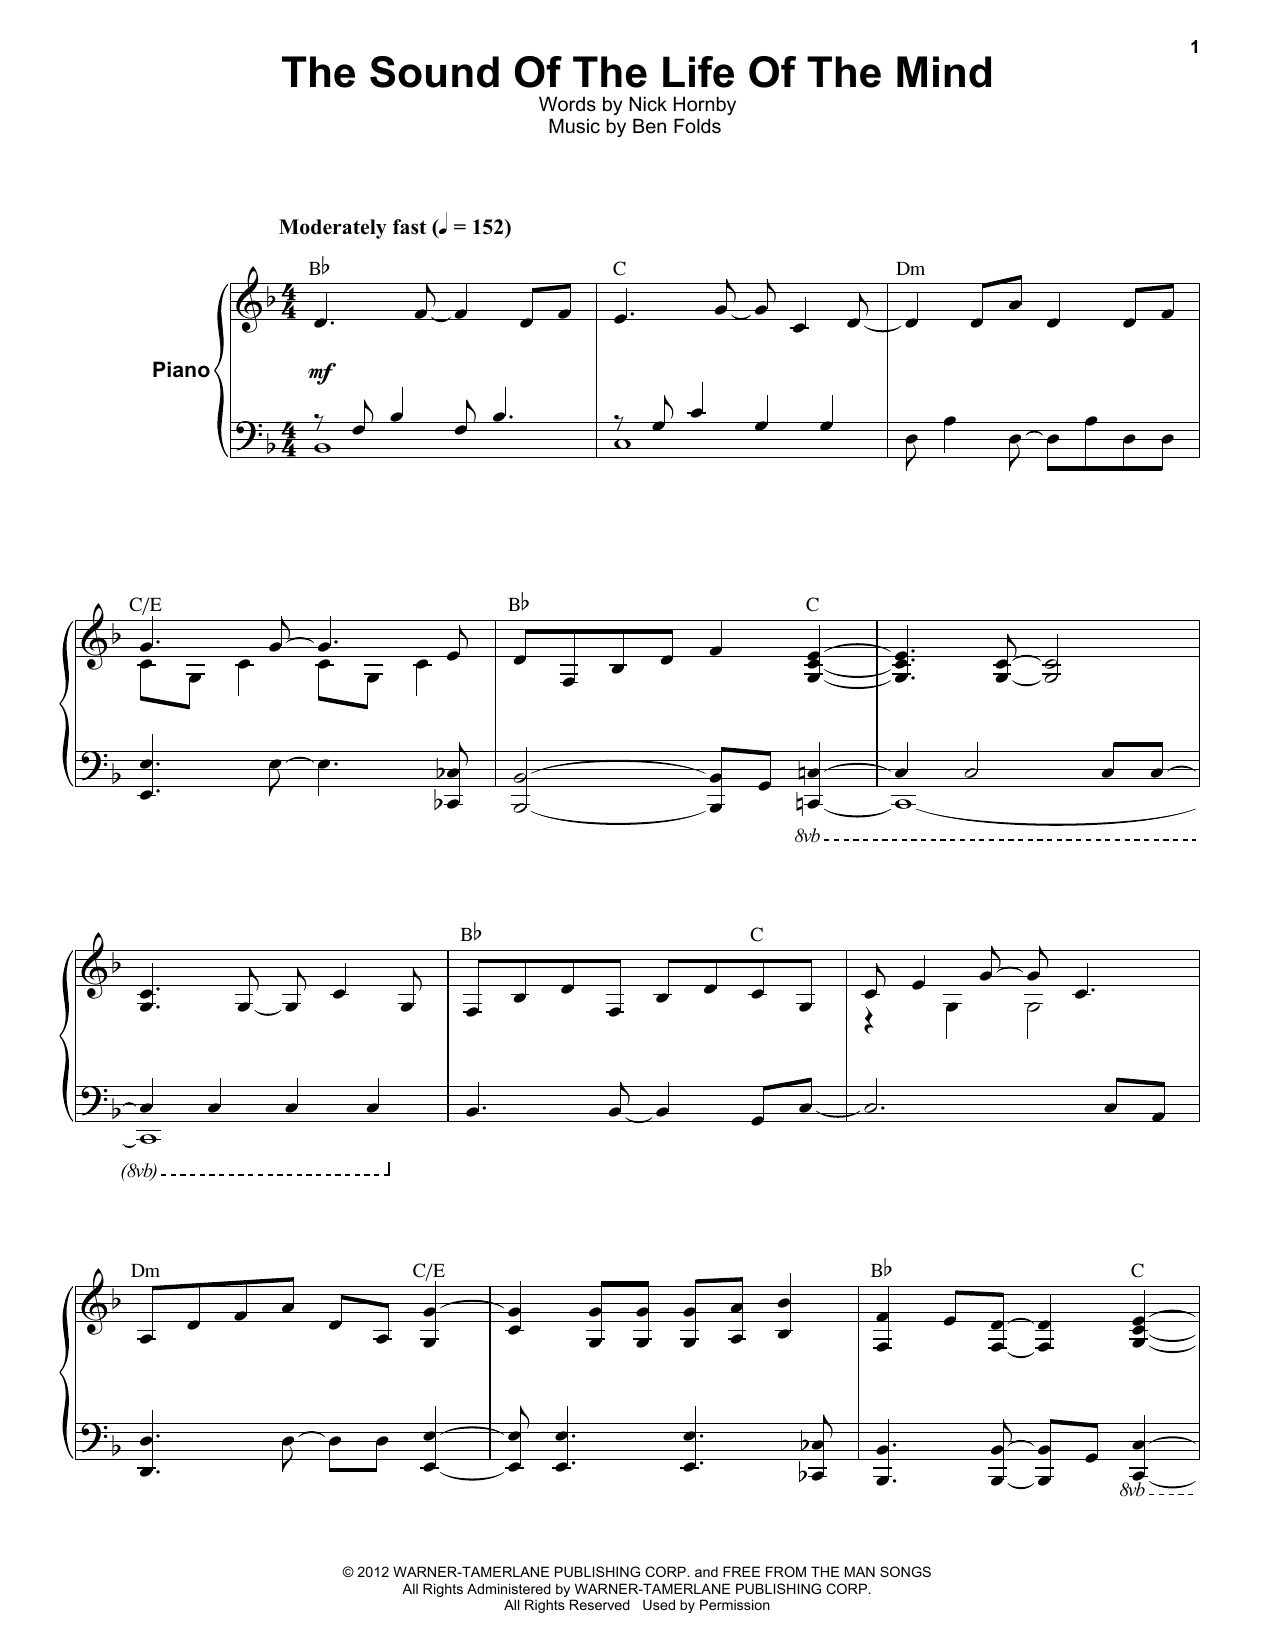 The Sound Of The Life Of The Mind (Keyboard Transcription)